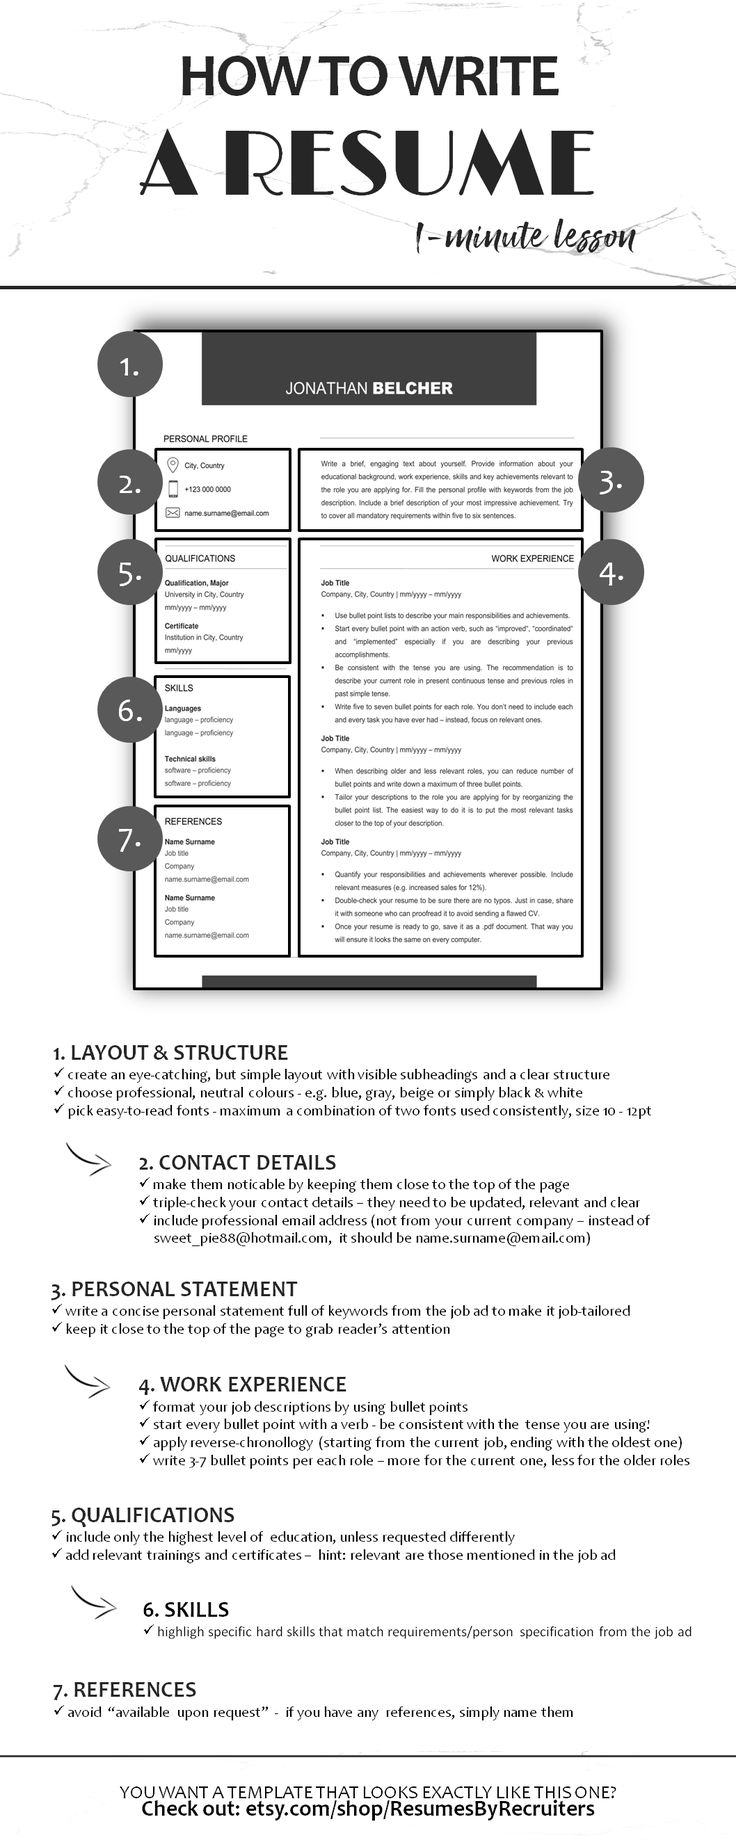 Minimalist CV Resume Template, Instant Download One and